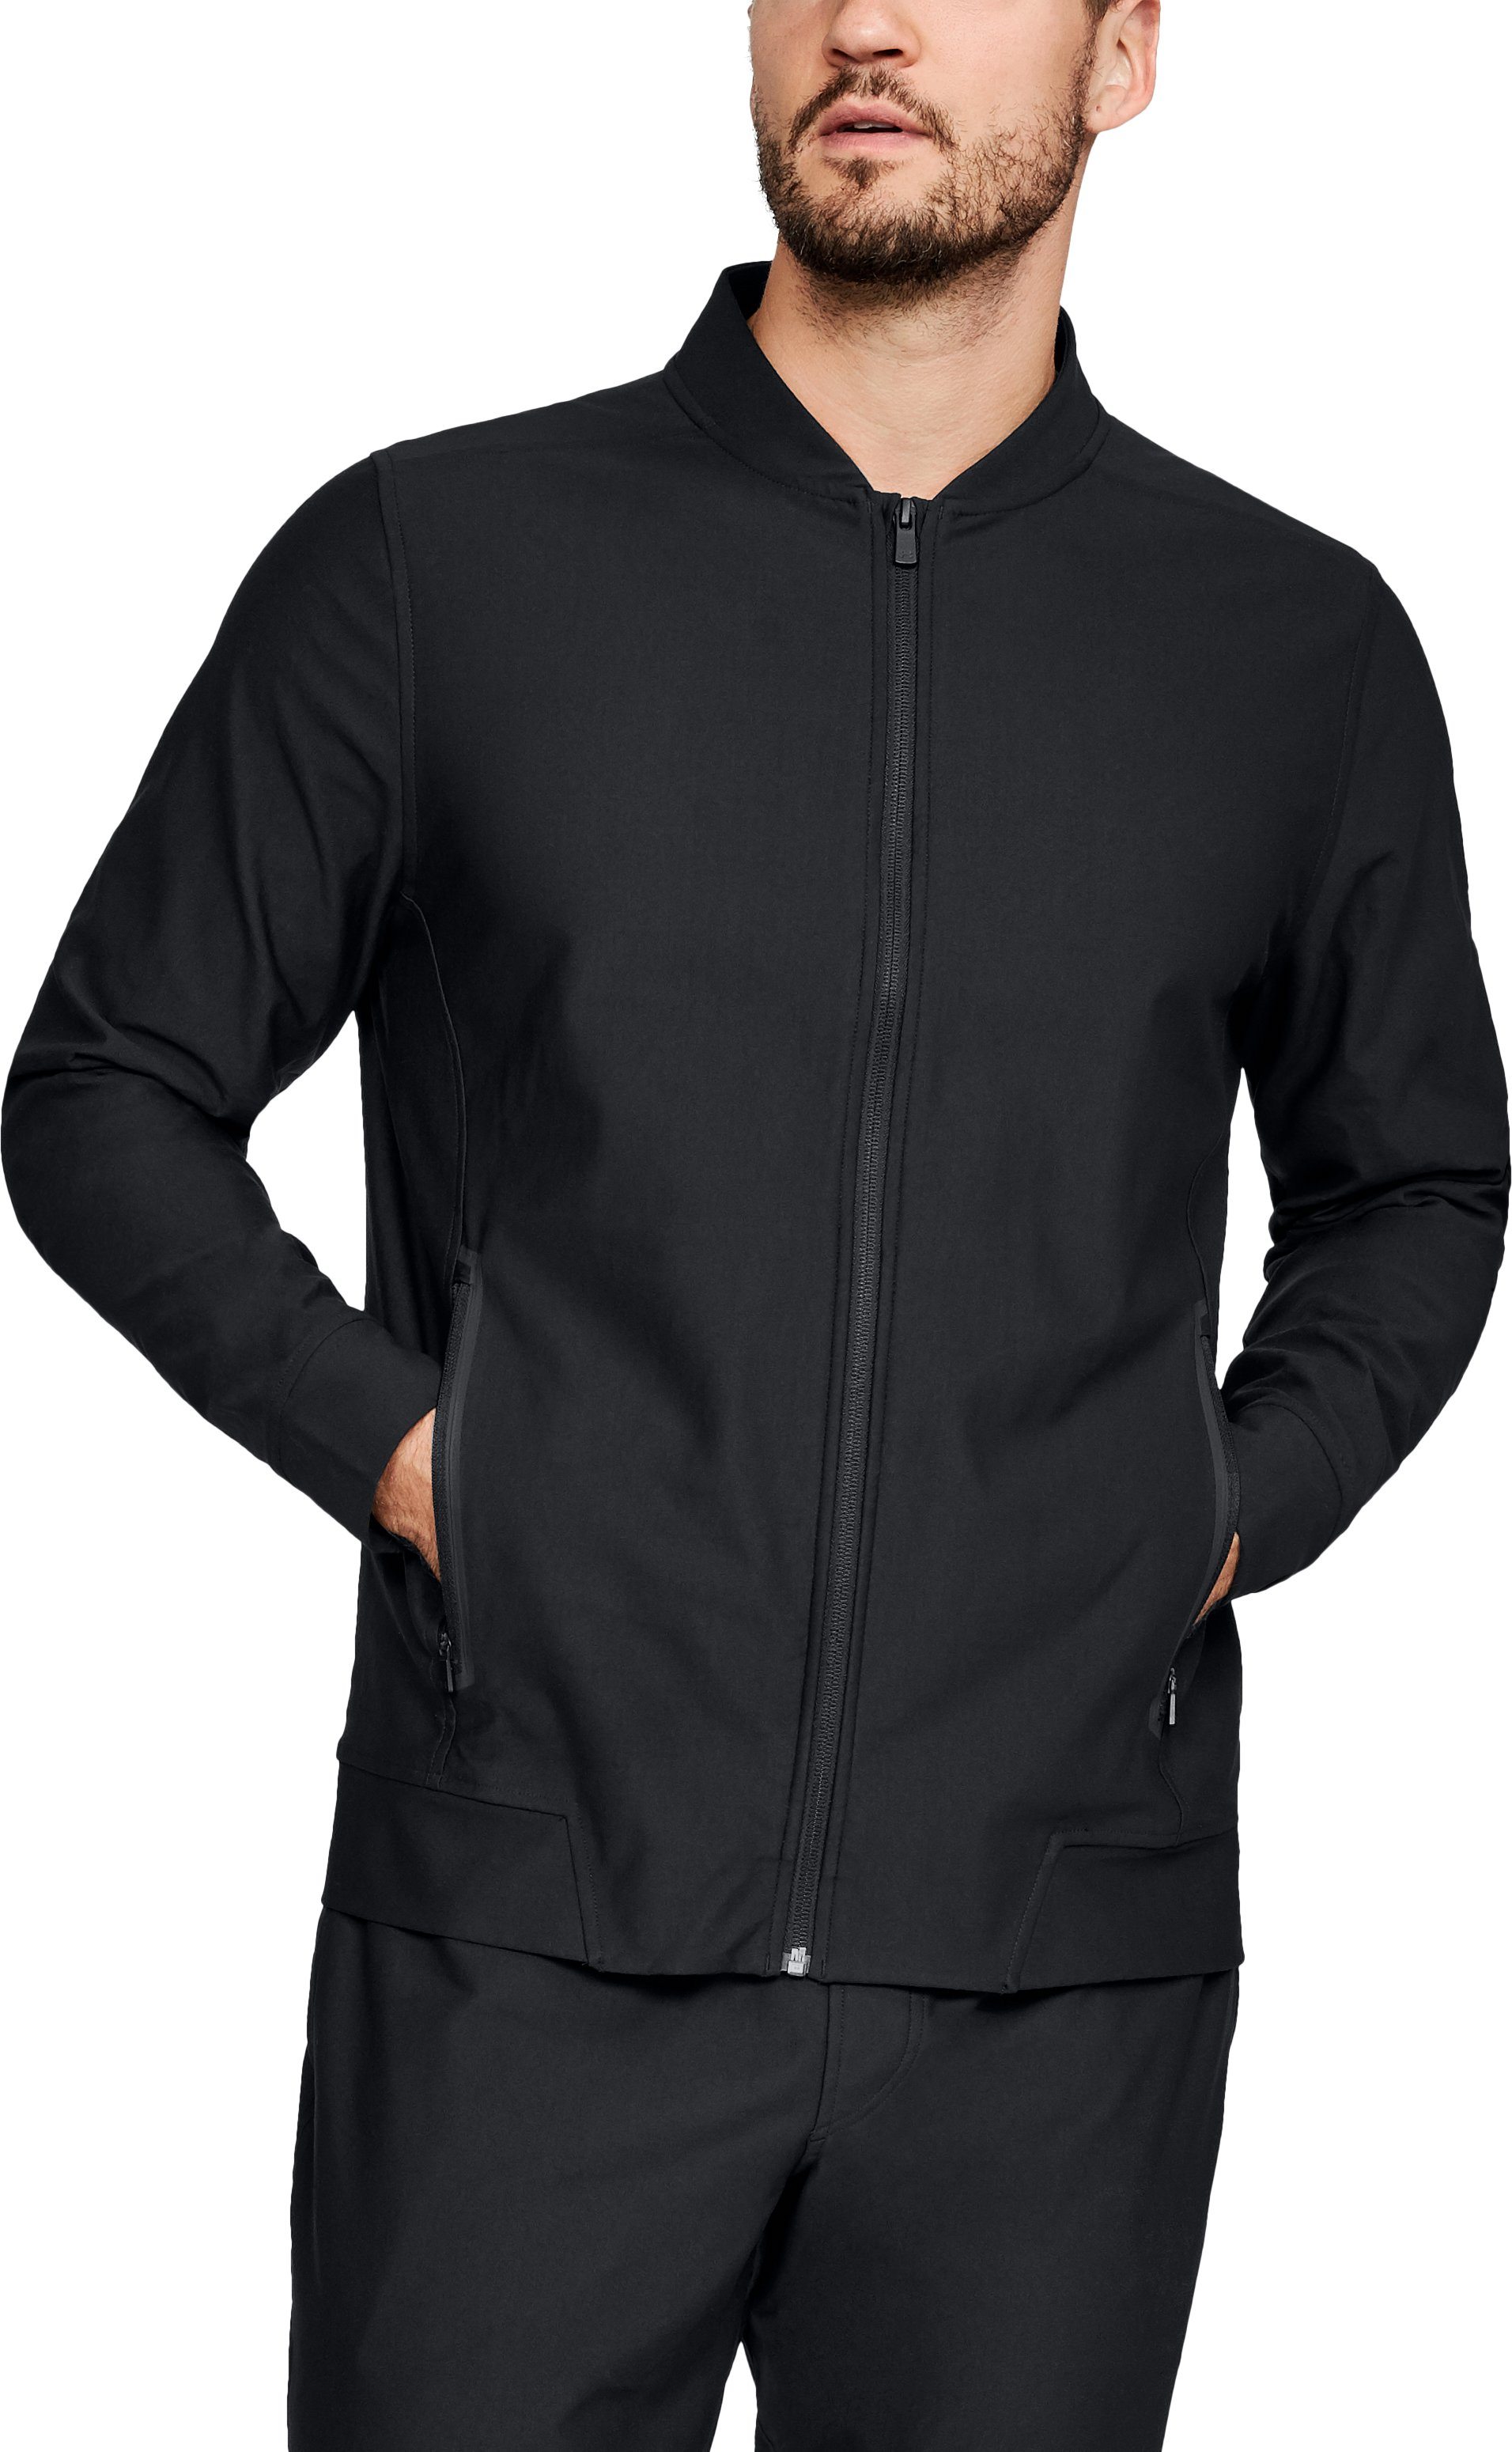 Men's Athlete Recovery Track Jacket, Black